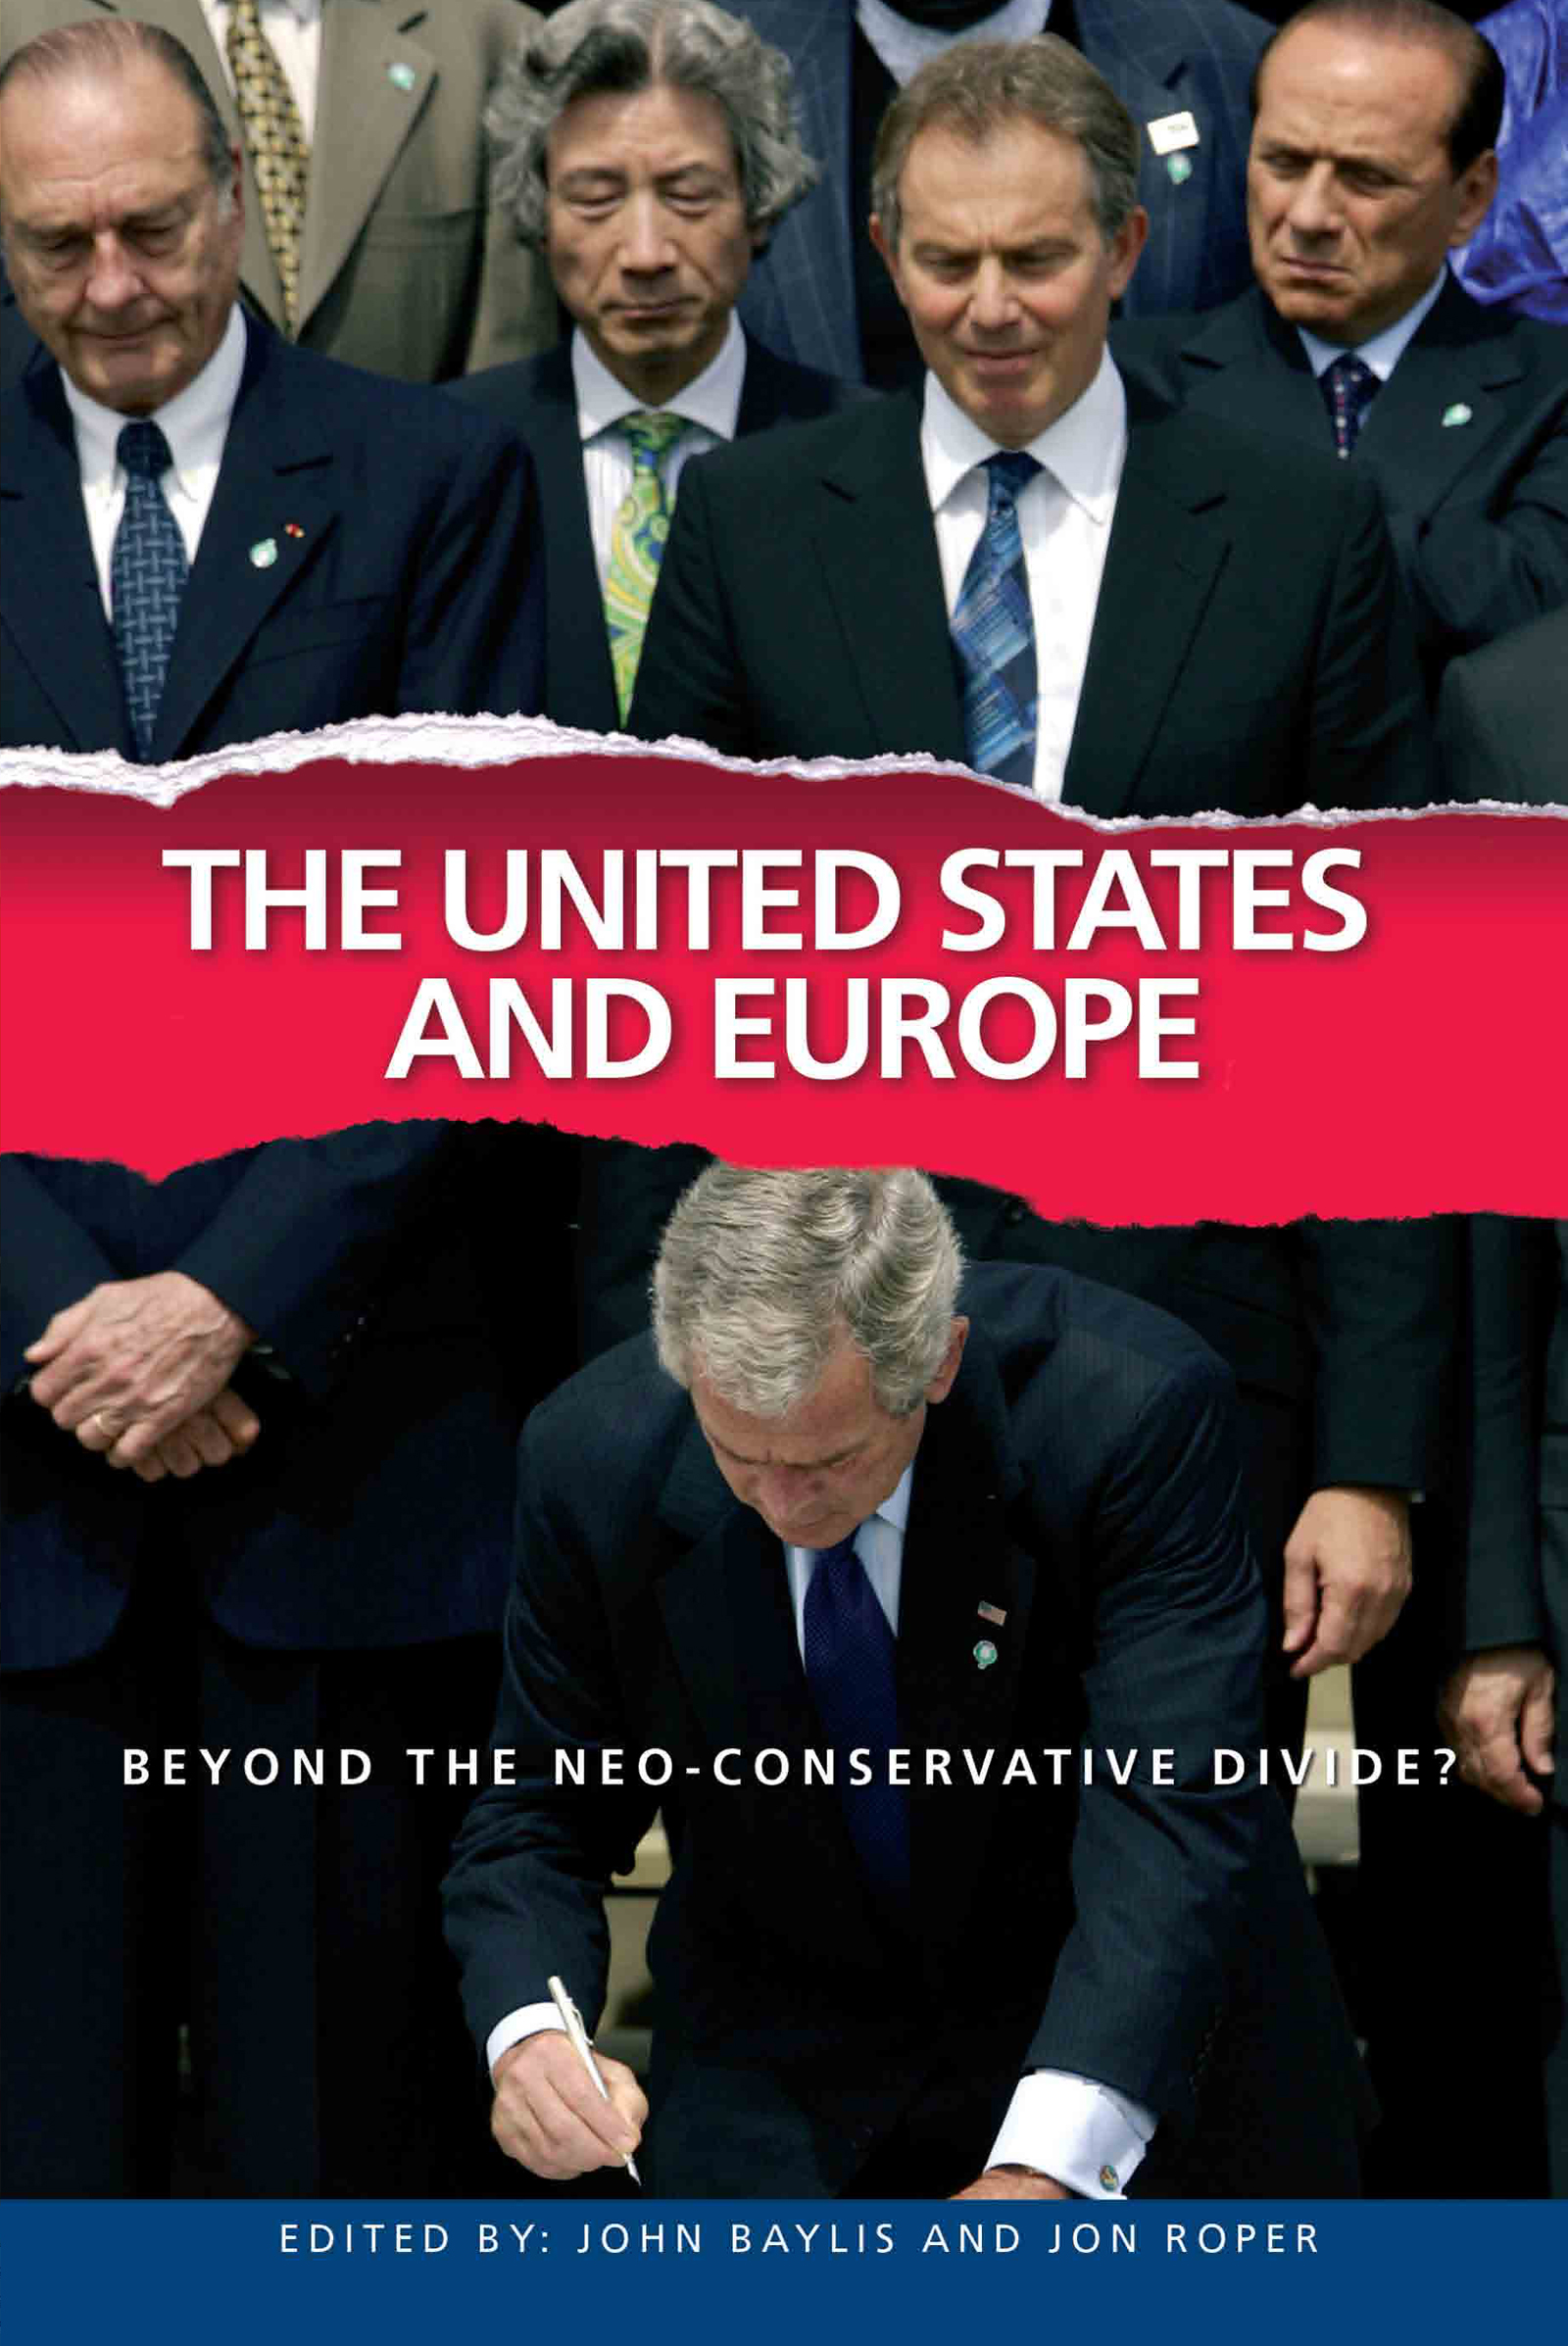 The United States and Europe